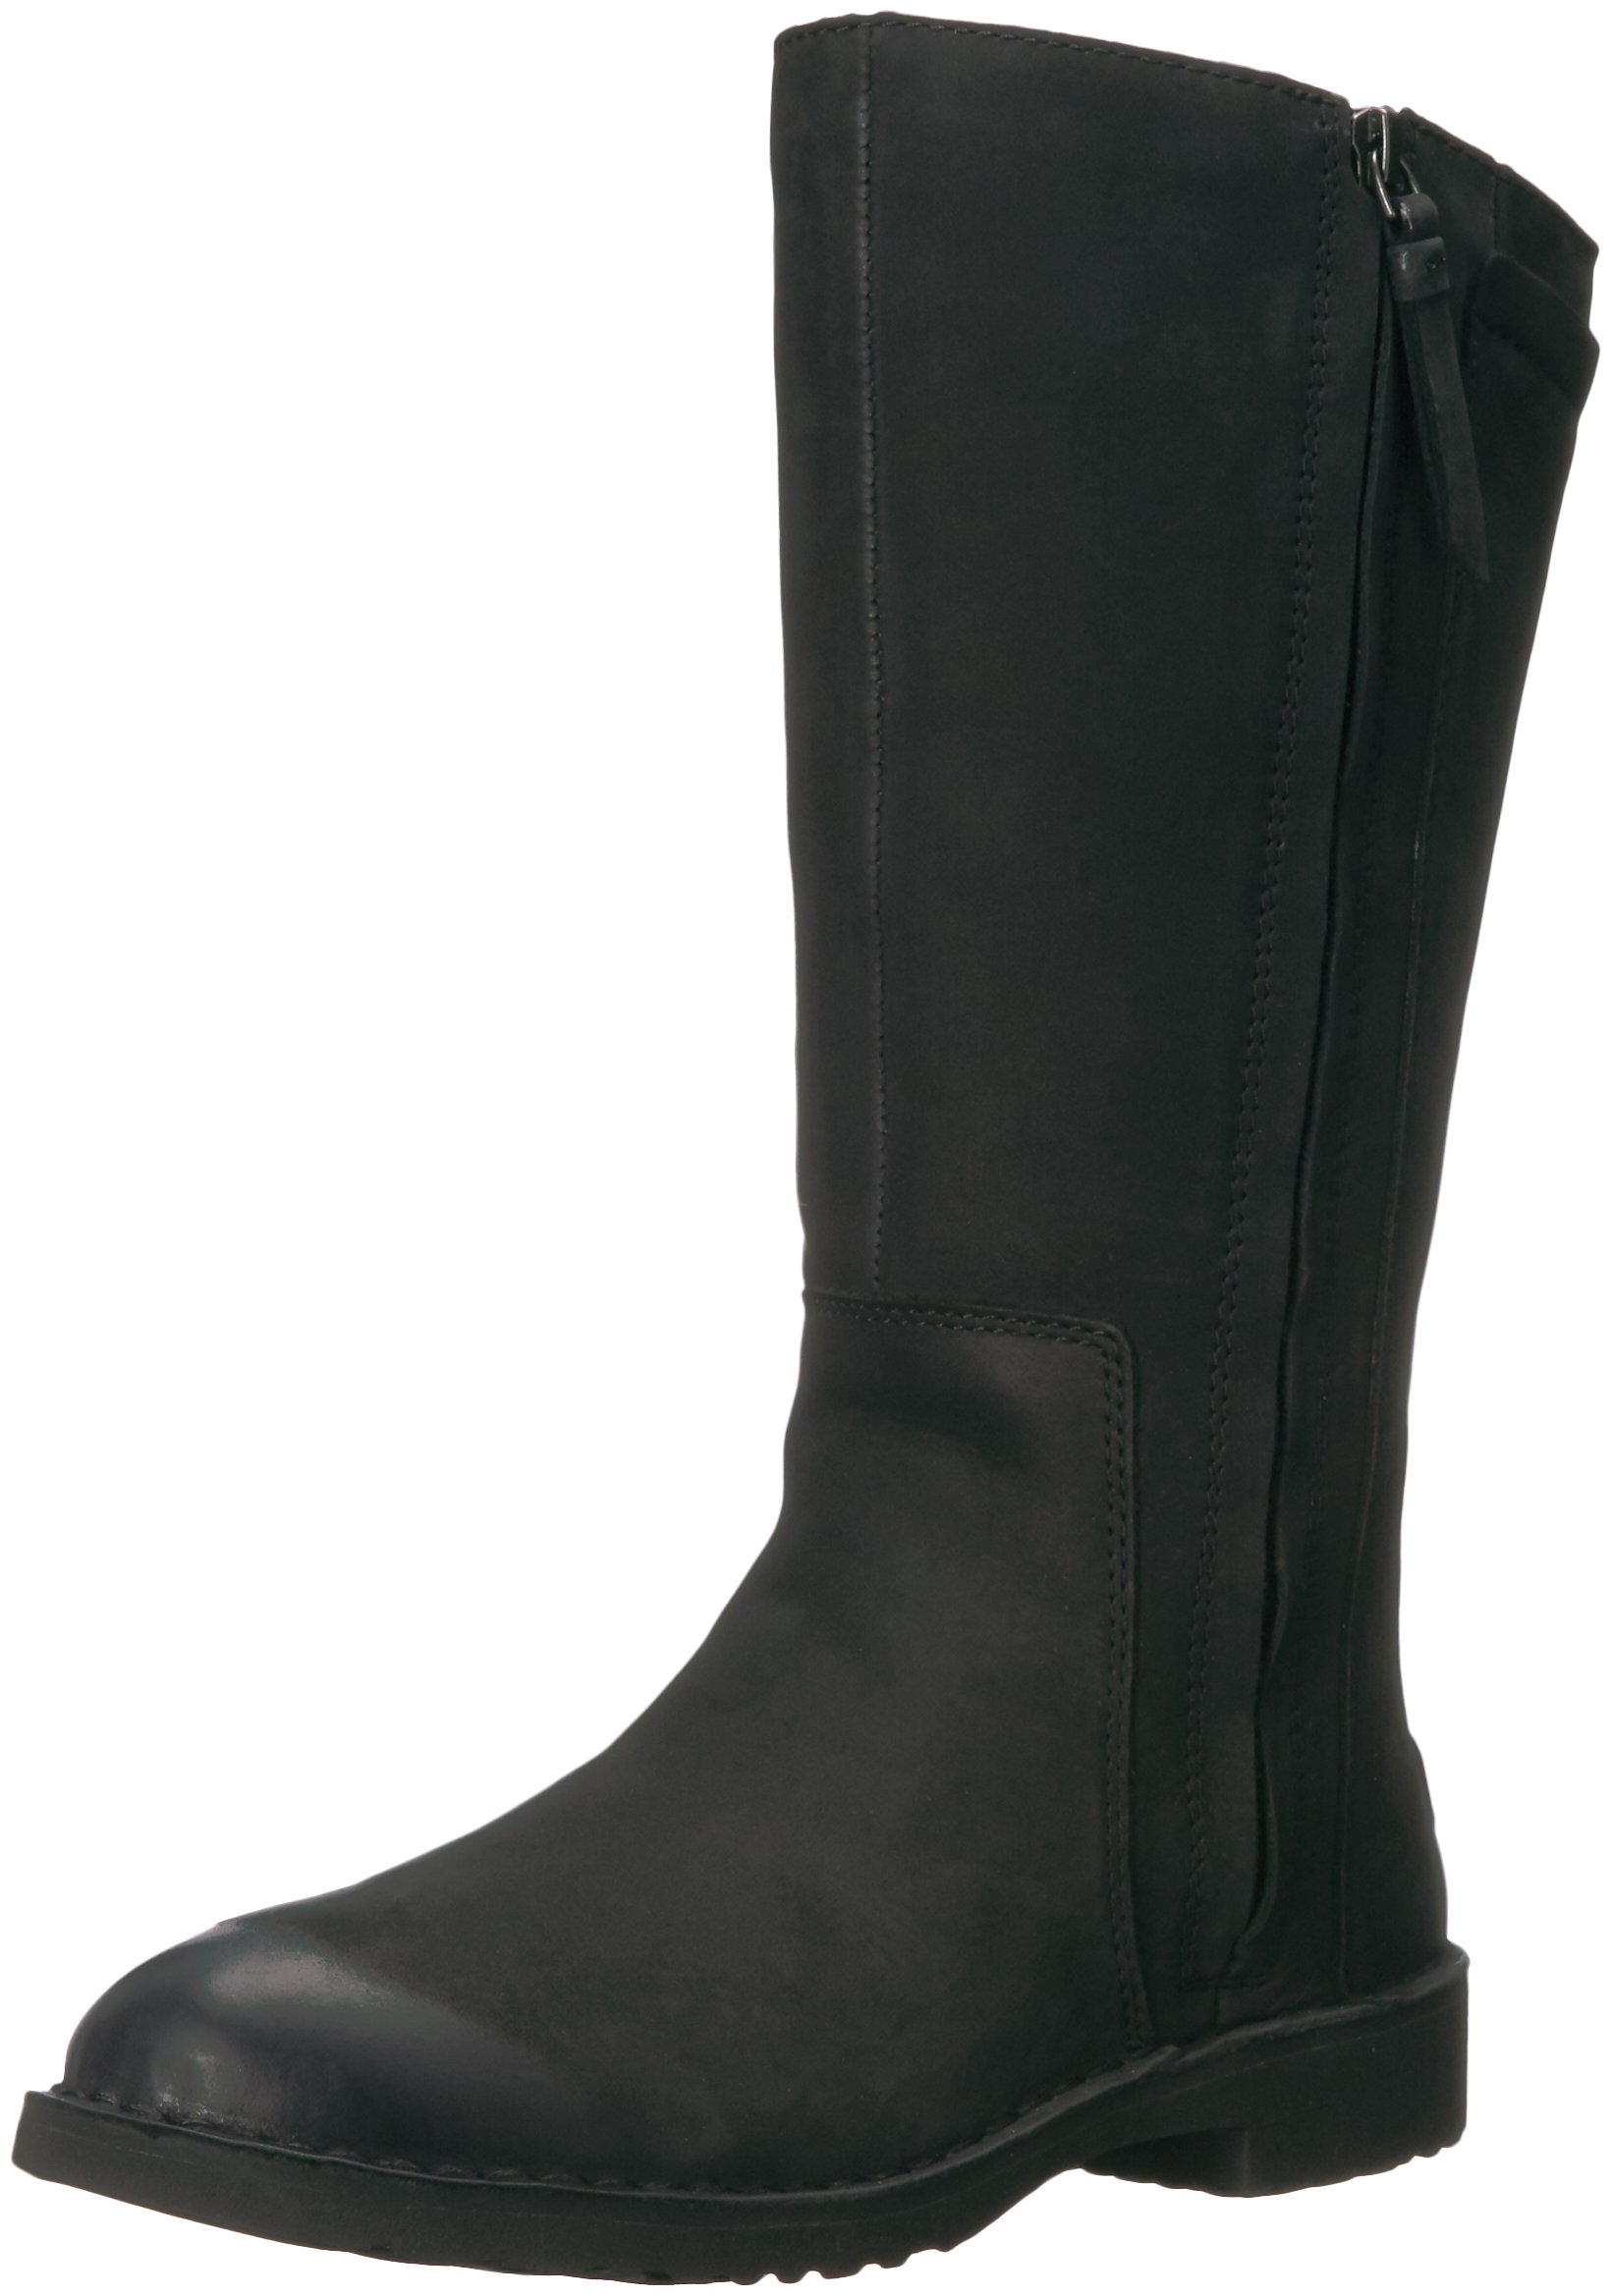 UGG Women's Elly Winter Boot, Black, 11 M US